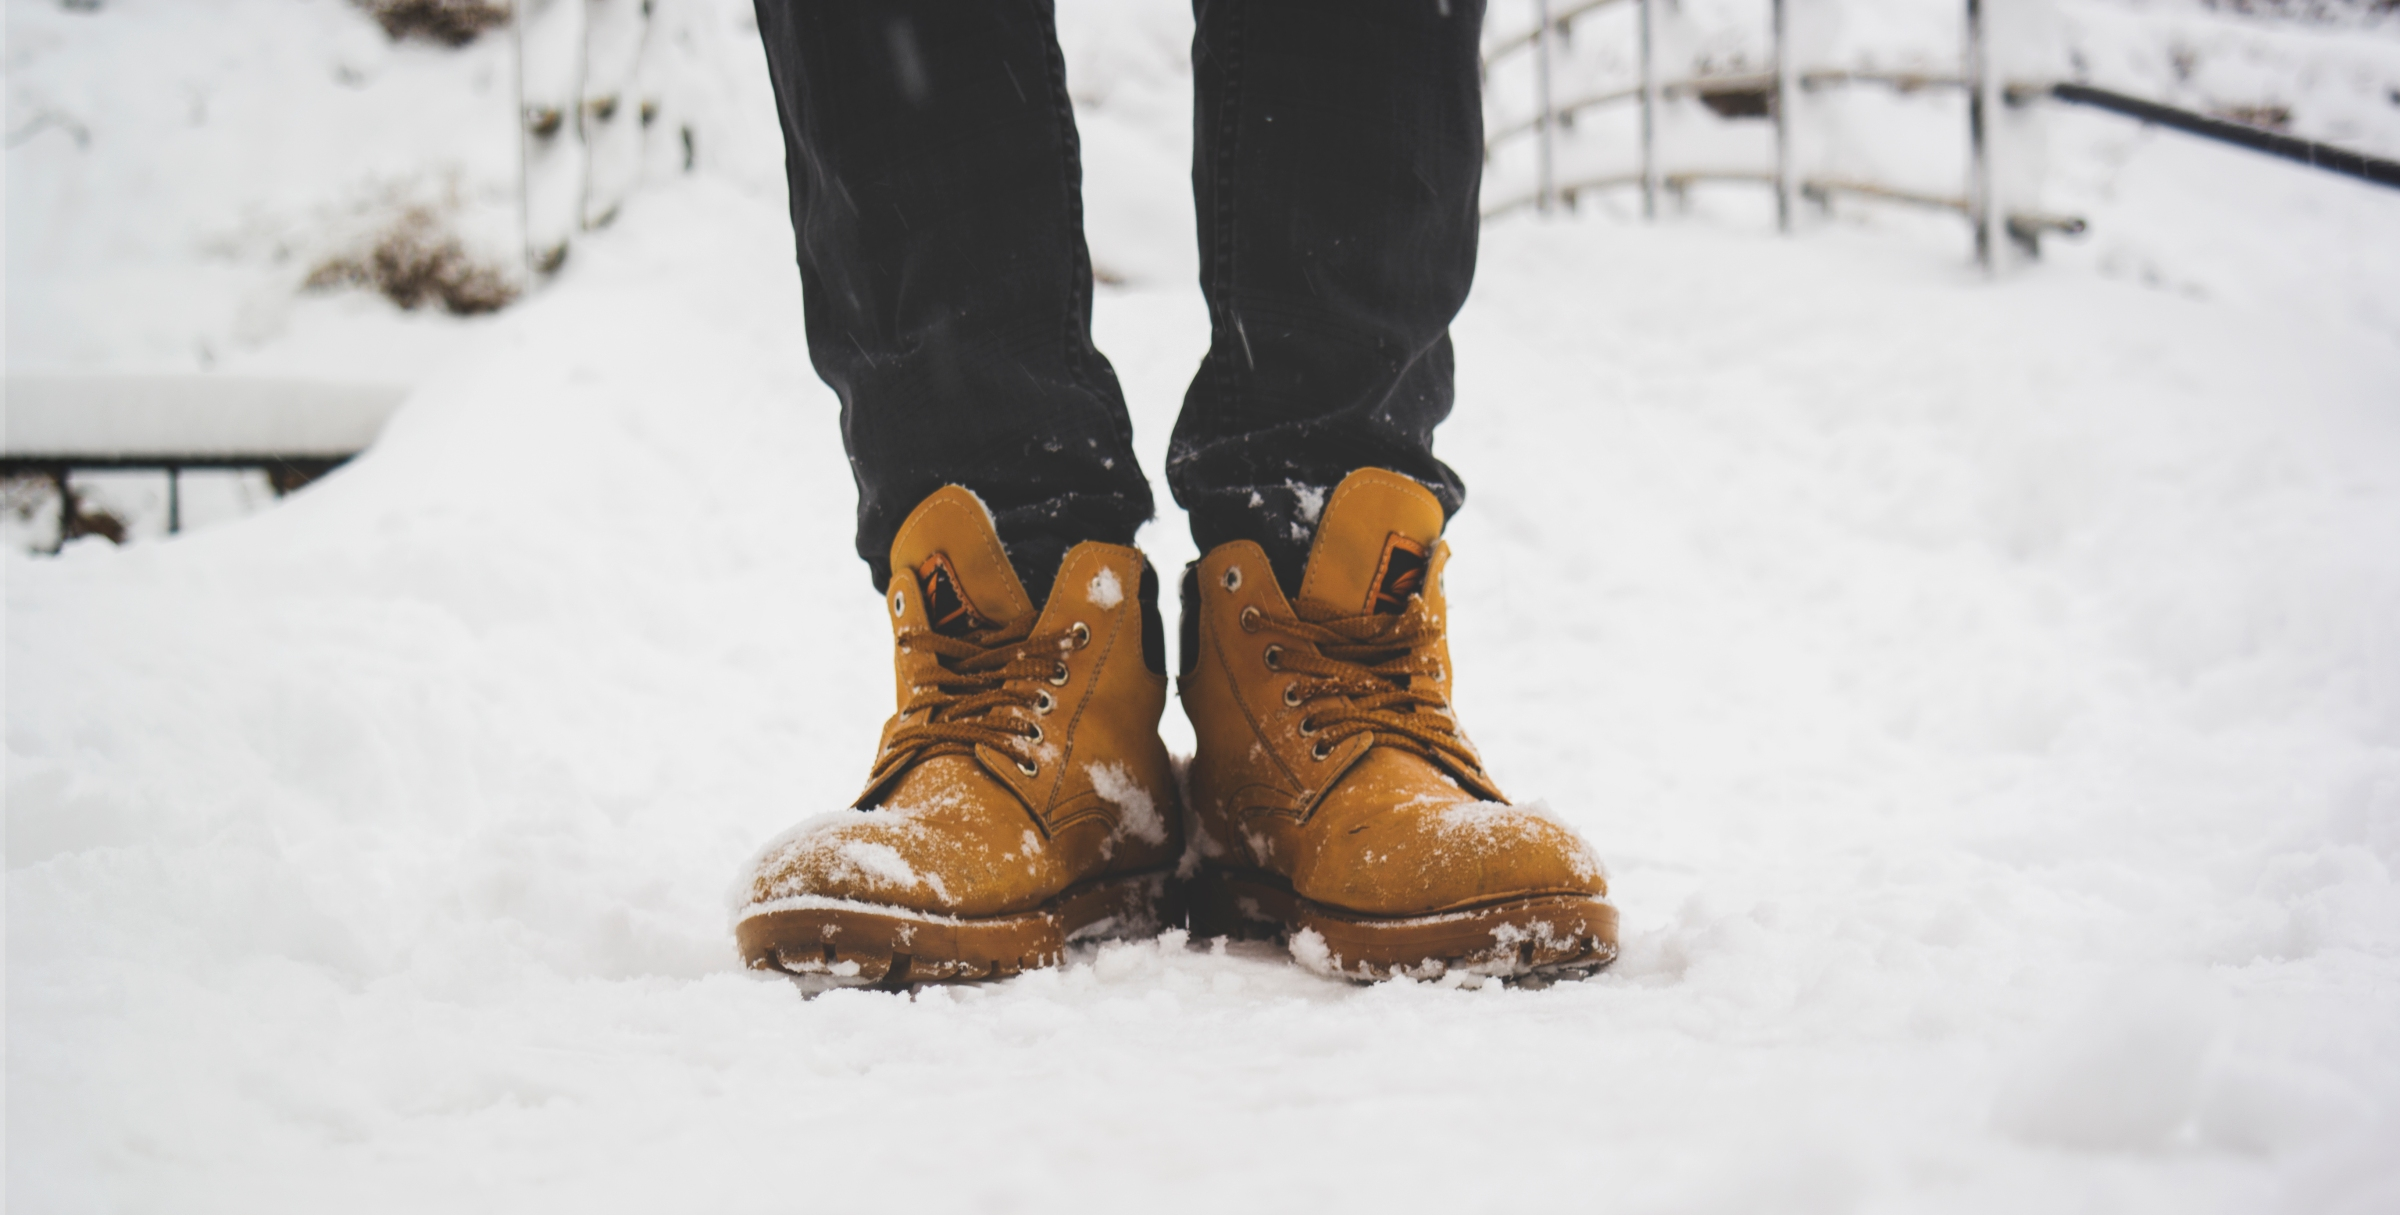 Picture of legs and feet in brown boots, standing in snow